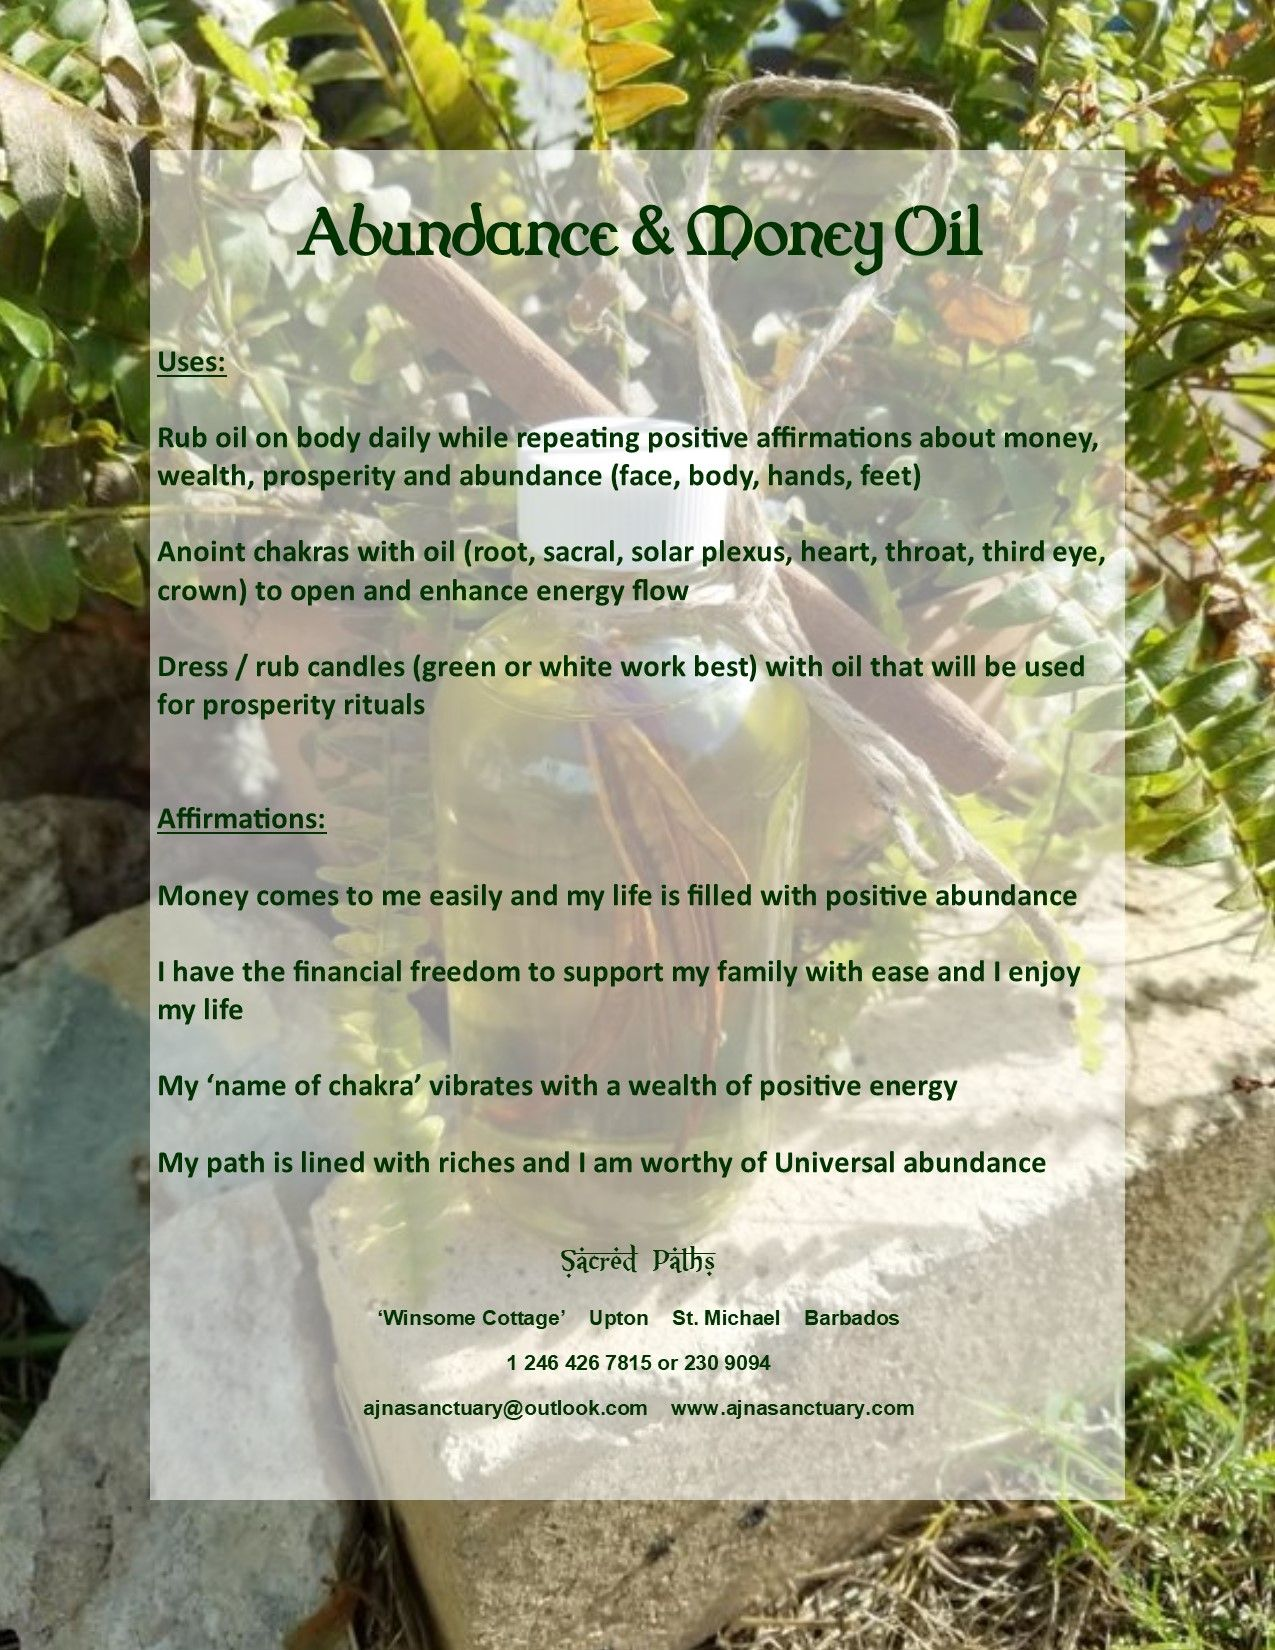 How To Use The Abundance And Money Oil